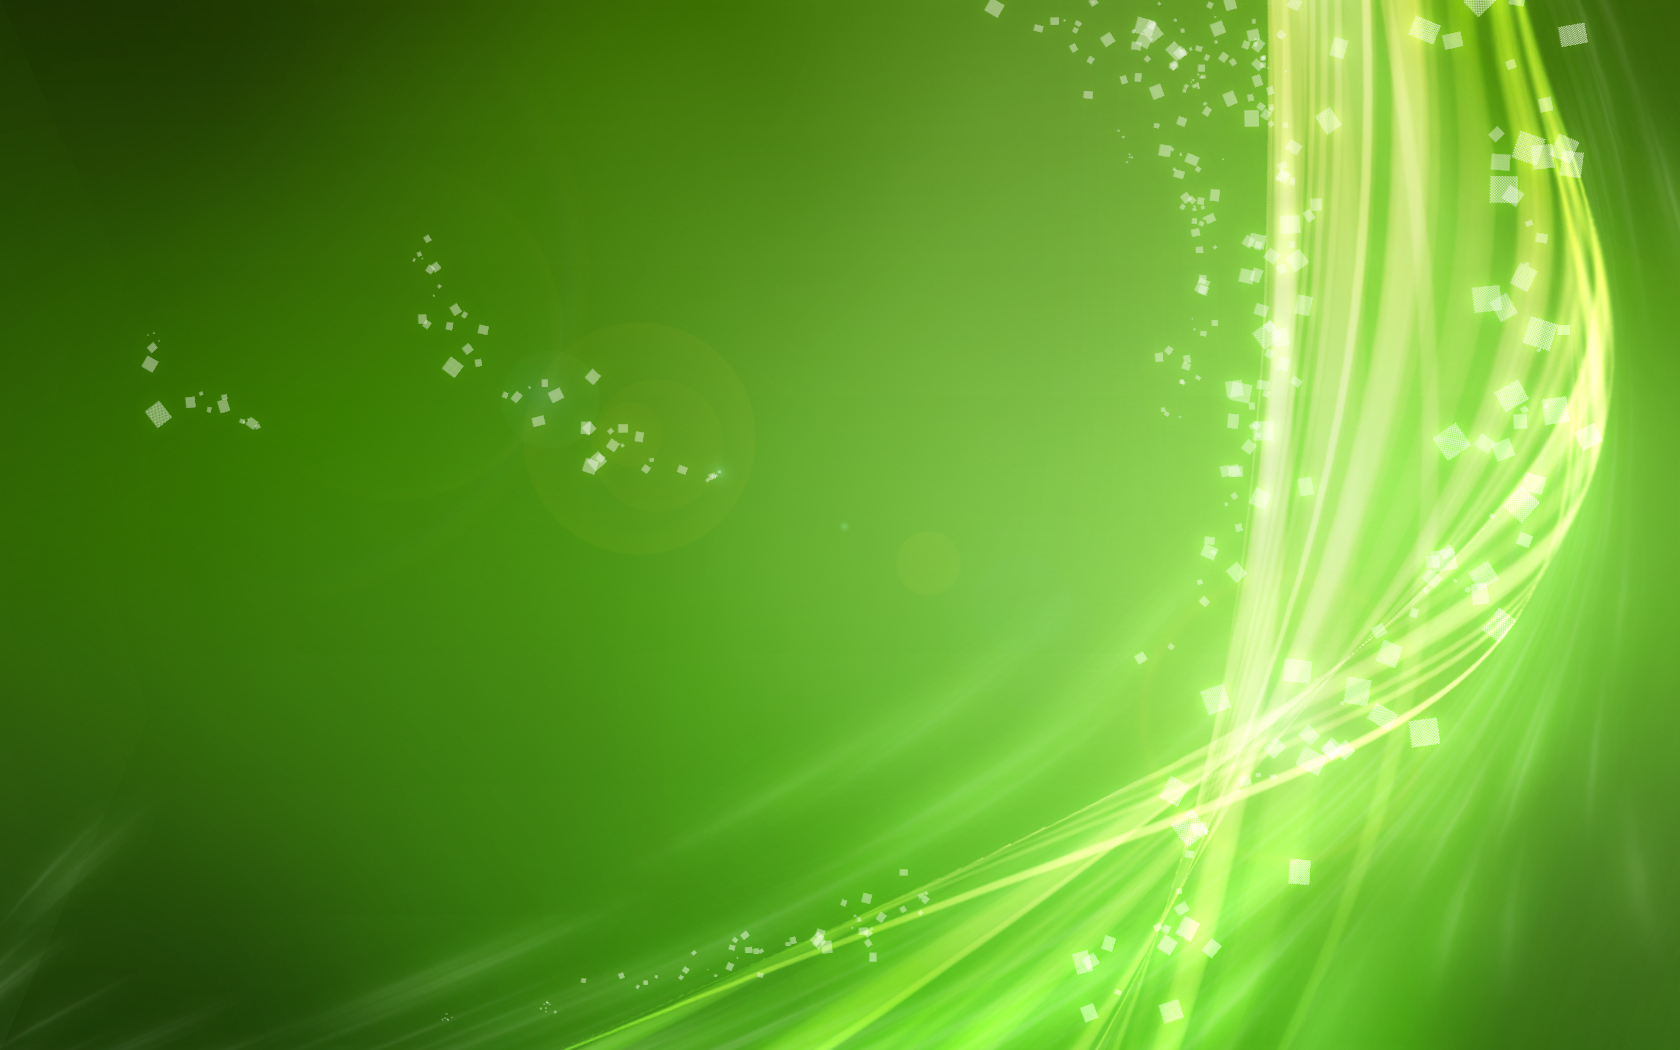 Abstract Green Wallpaper